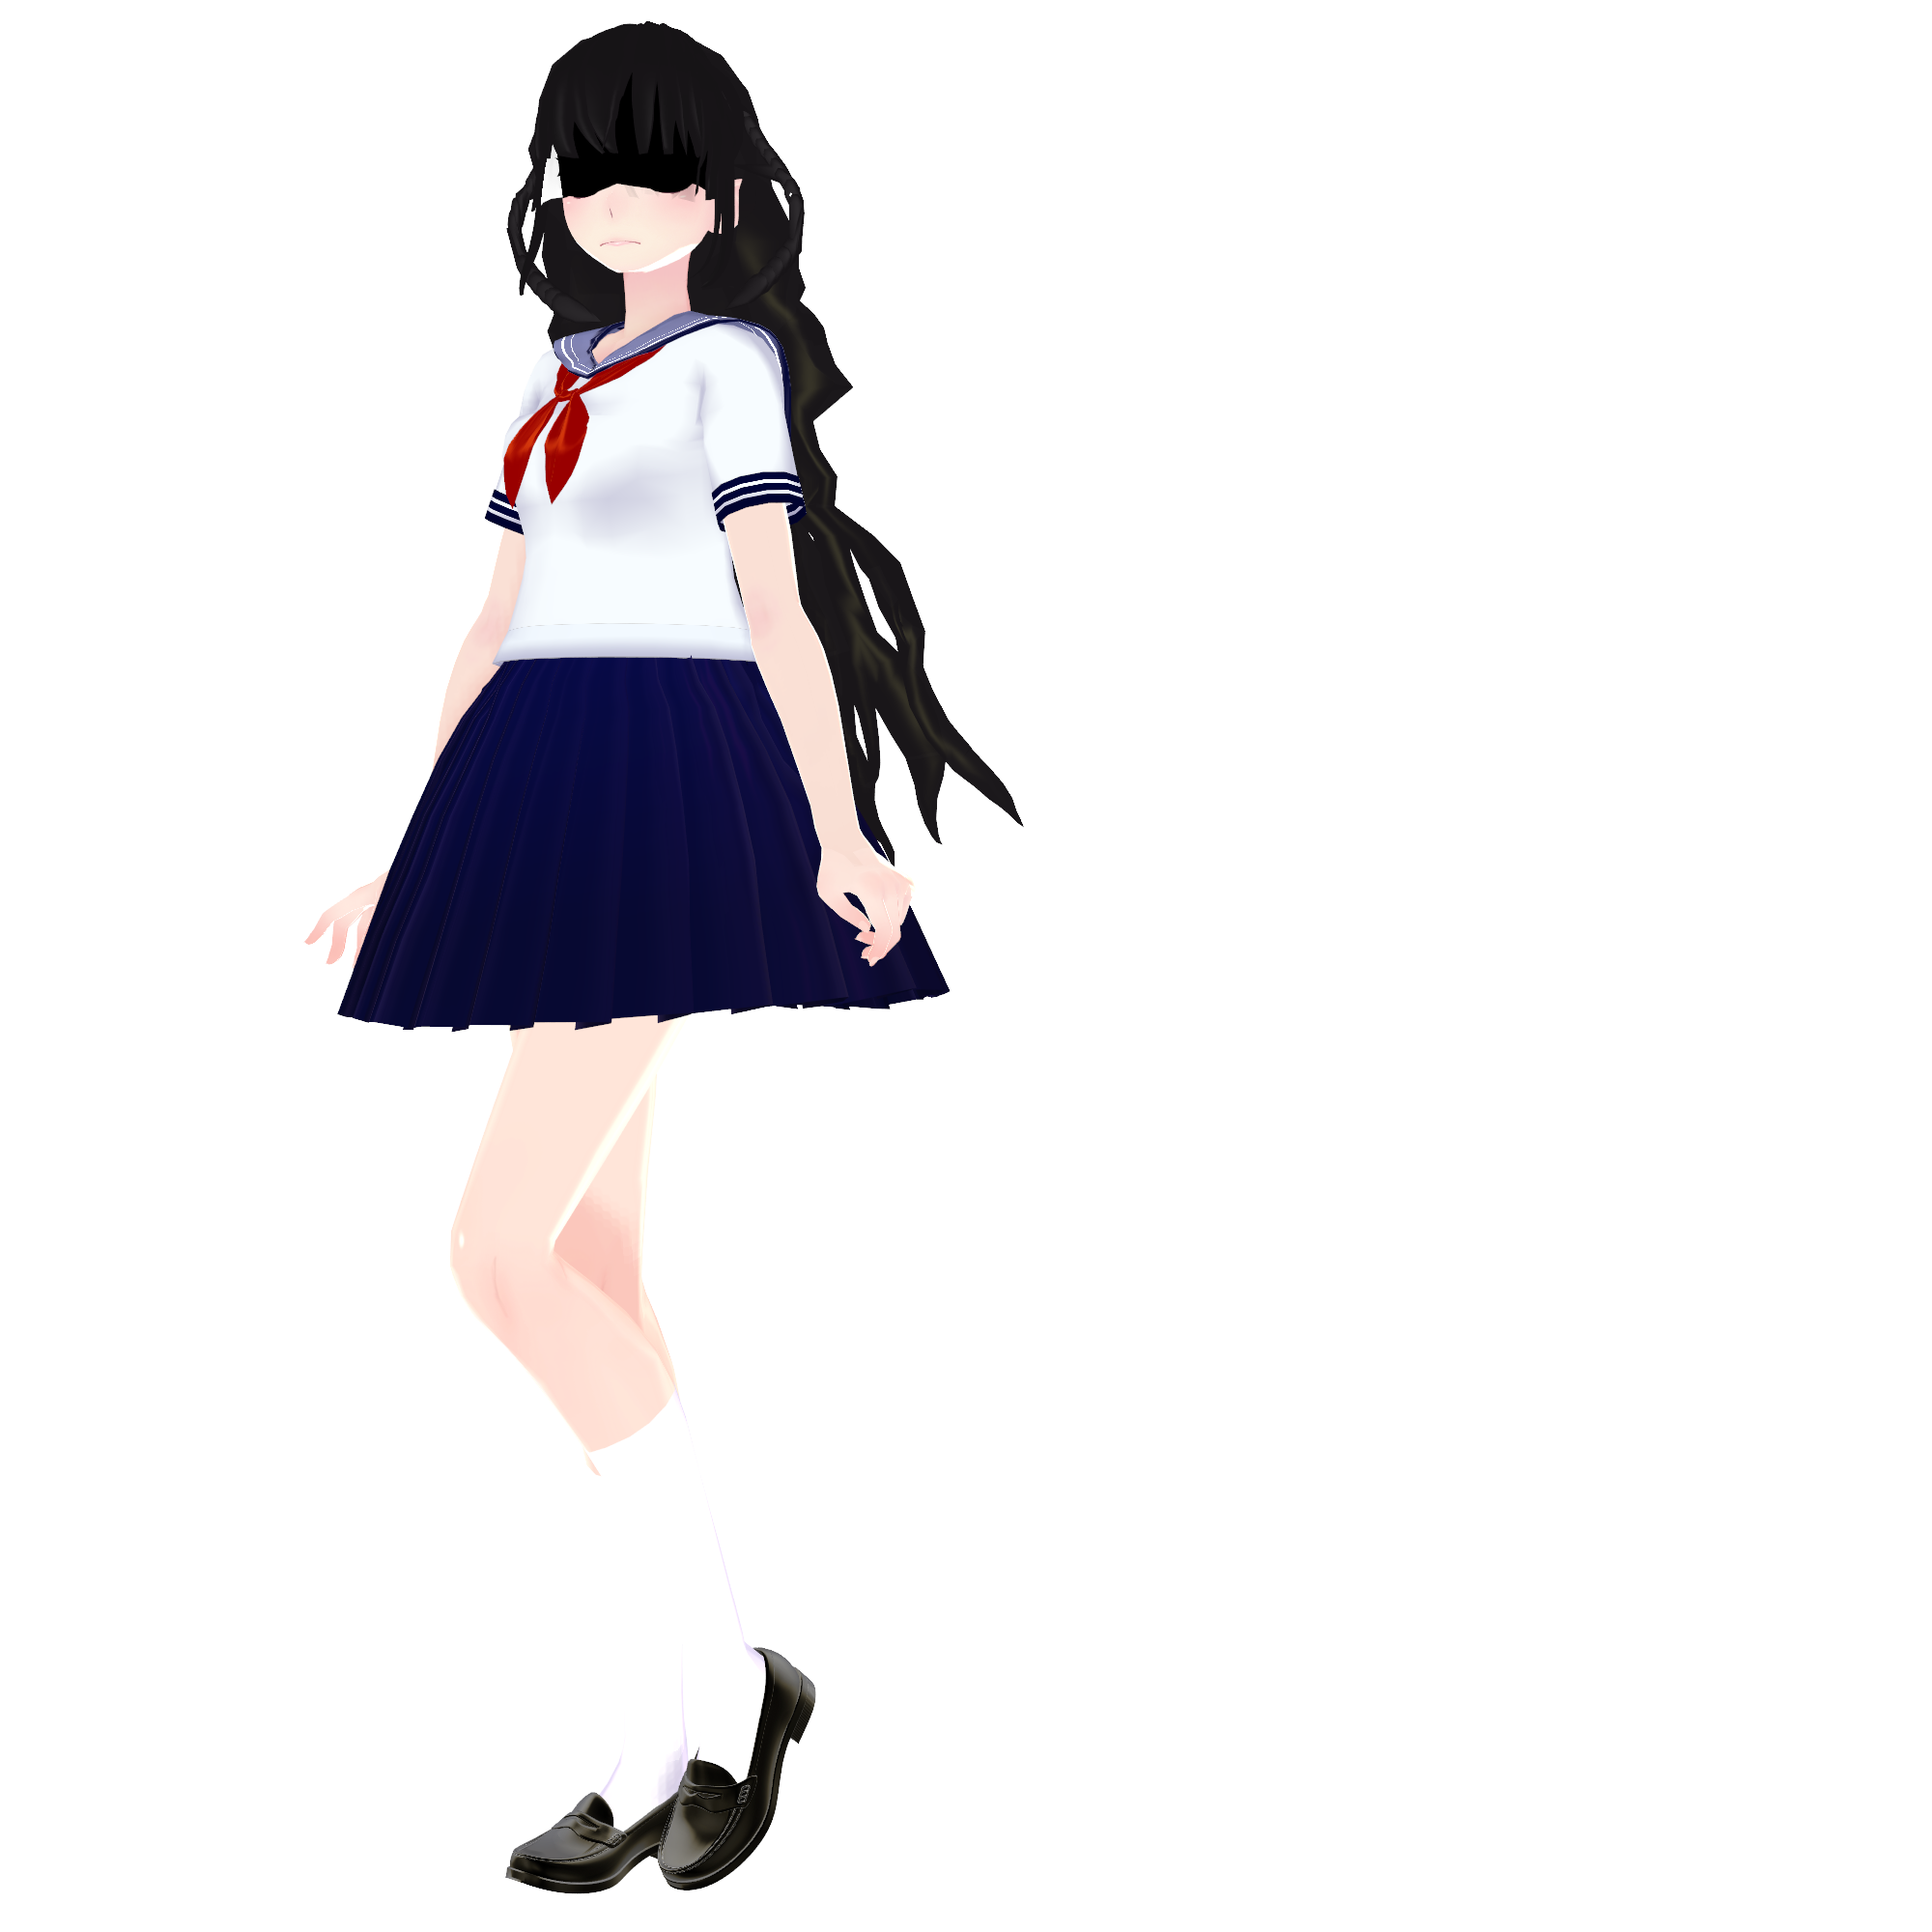 Mmd yandere simulator computer girl download by for Deviantart vrchat avatars